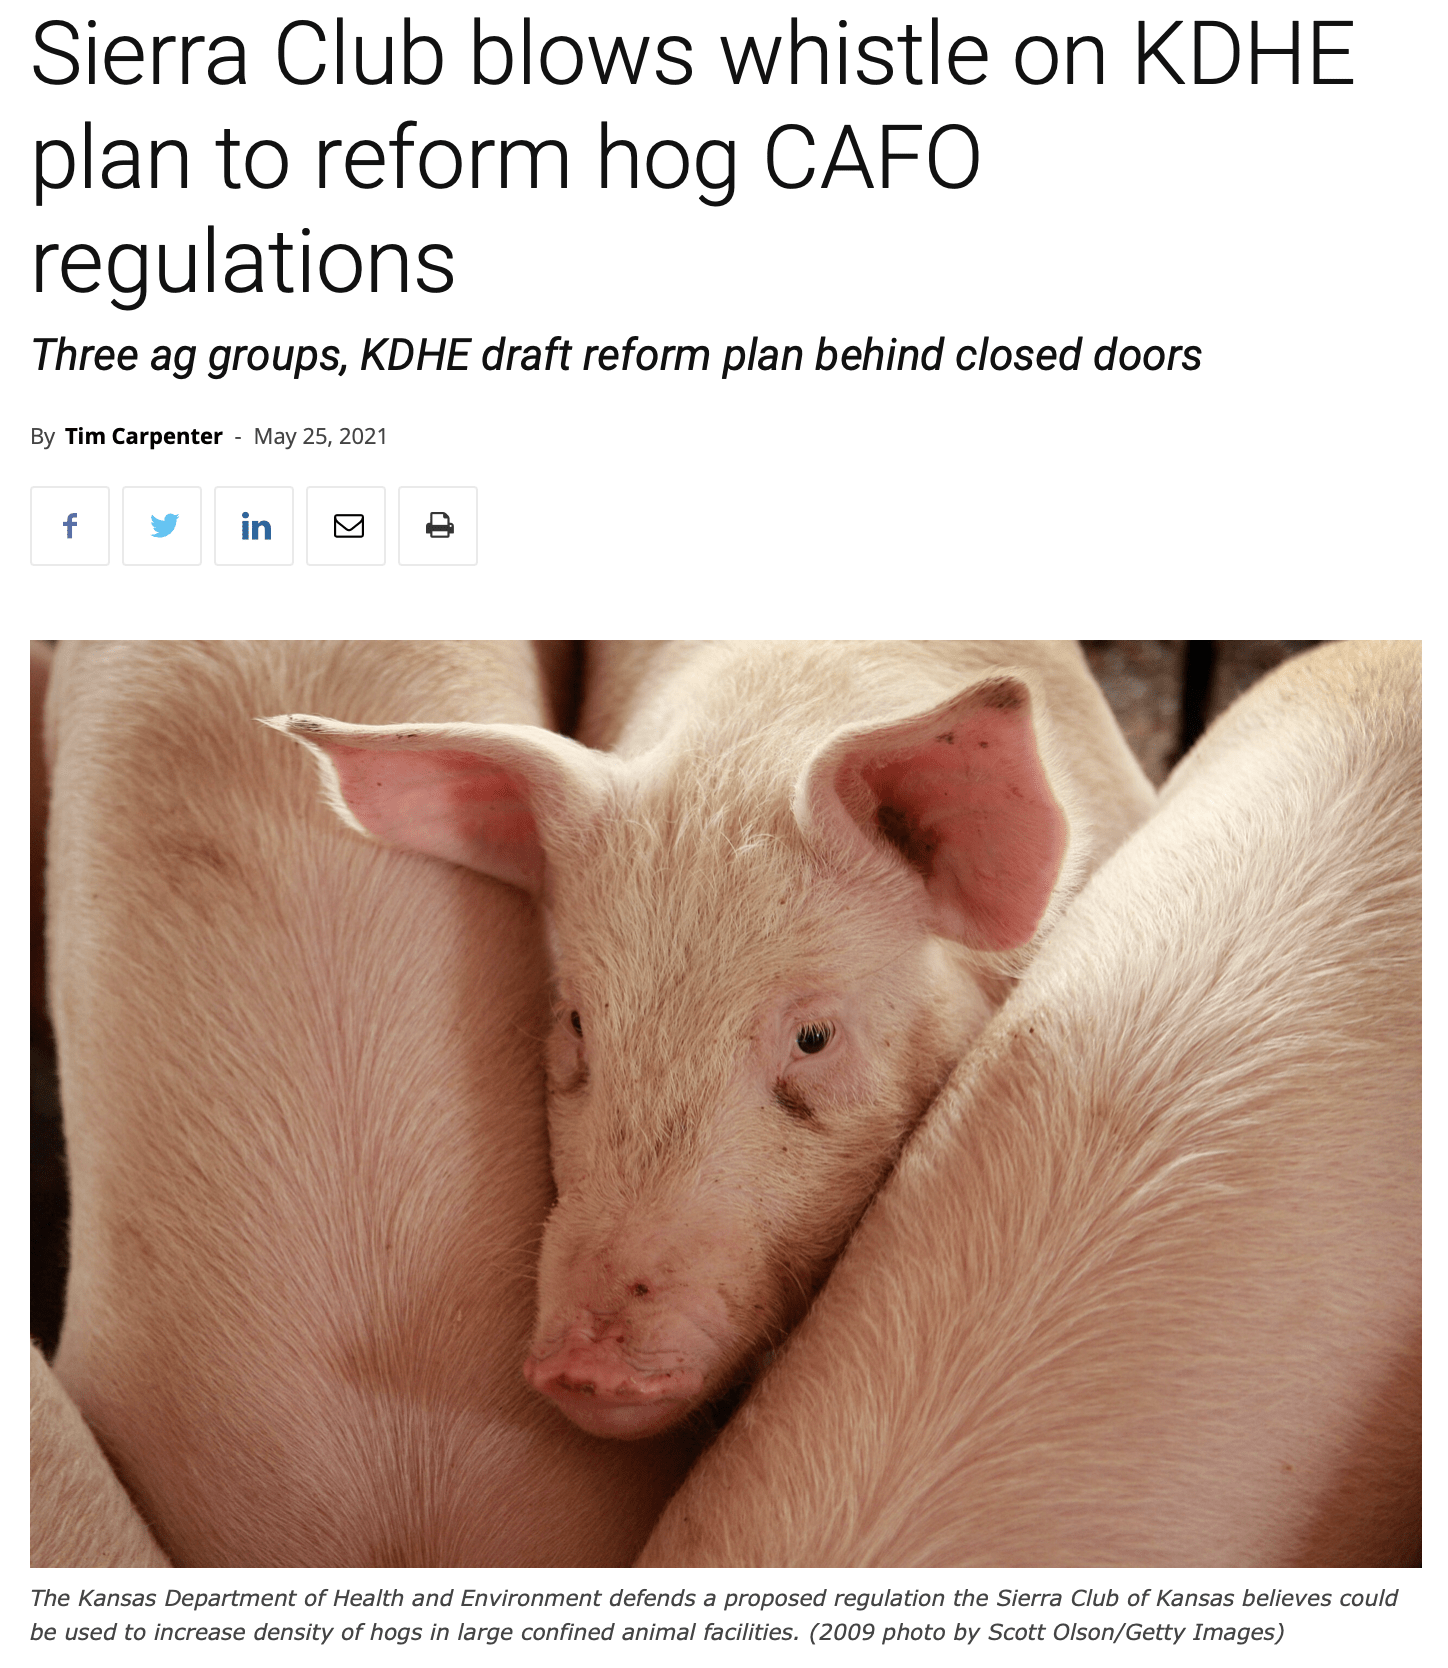 Kansas Reflector article on proposed CAFO rules and regs changes